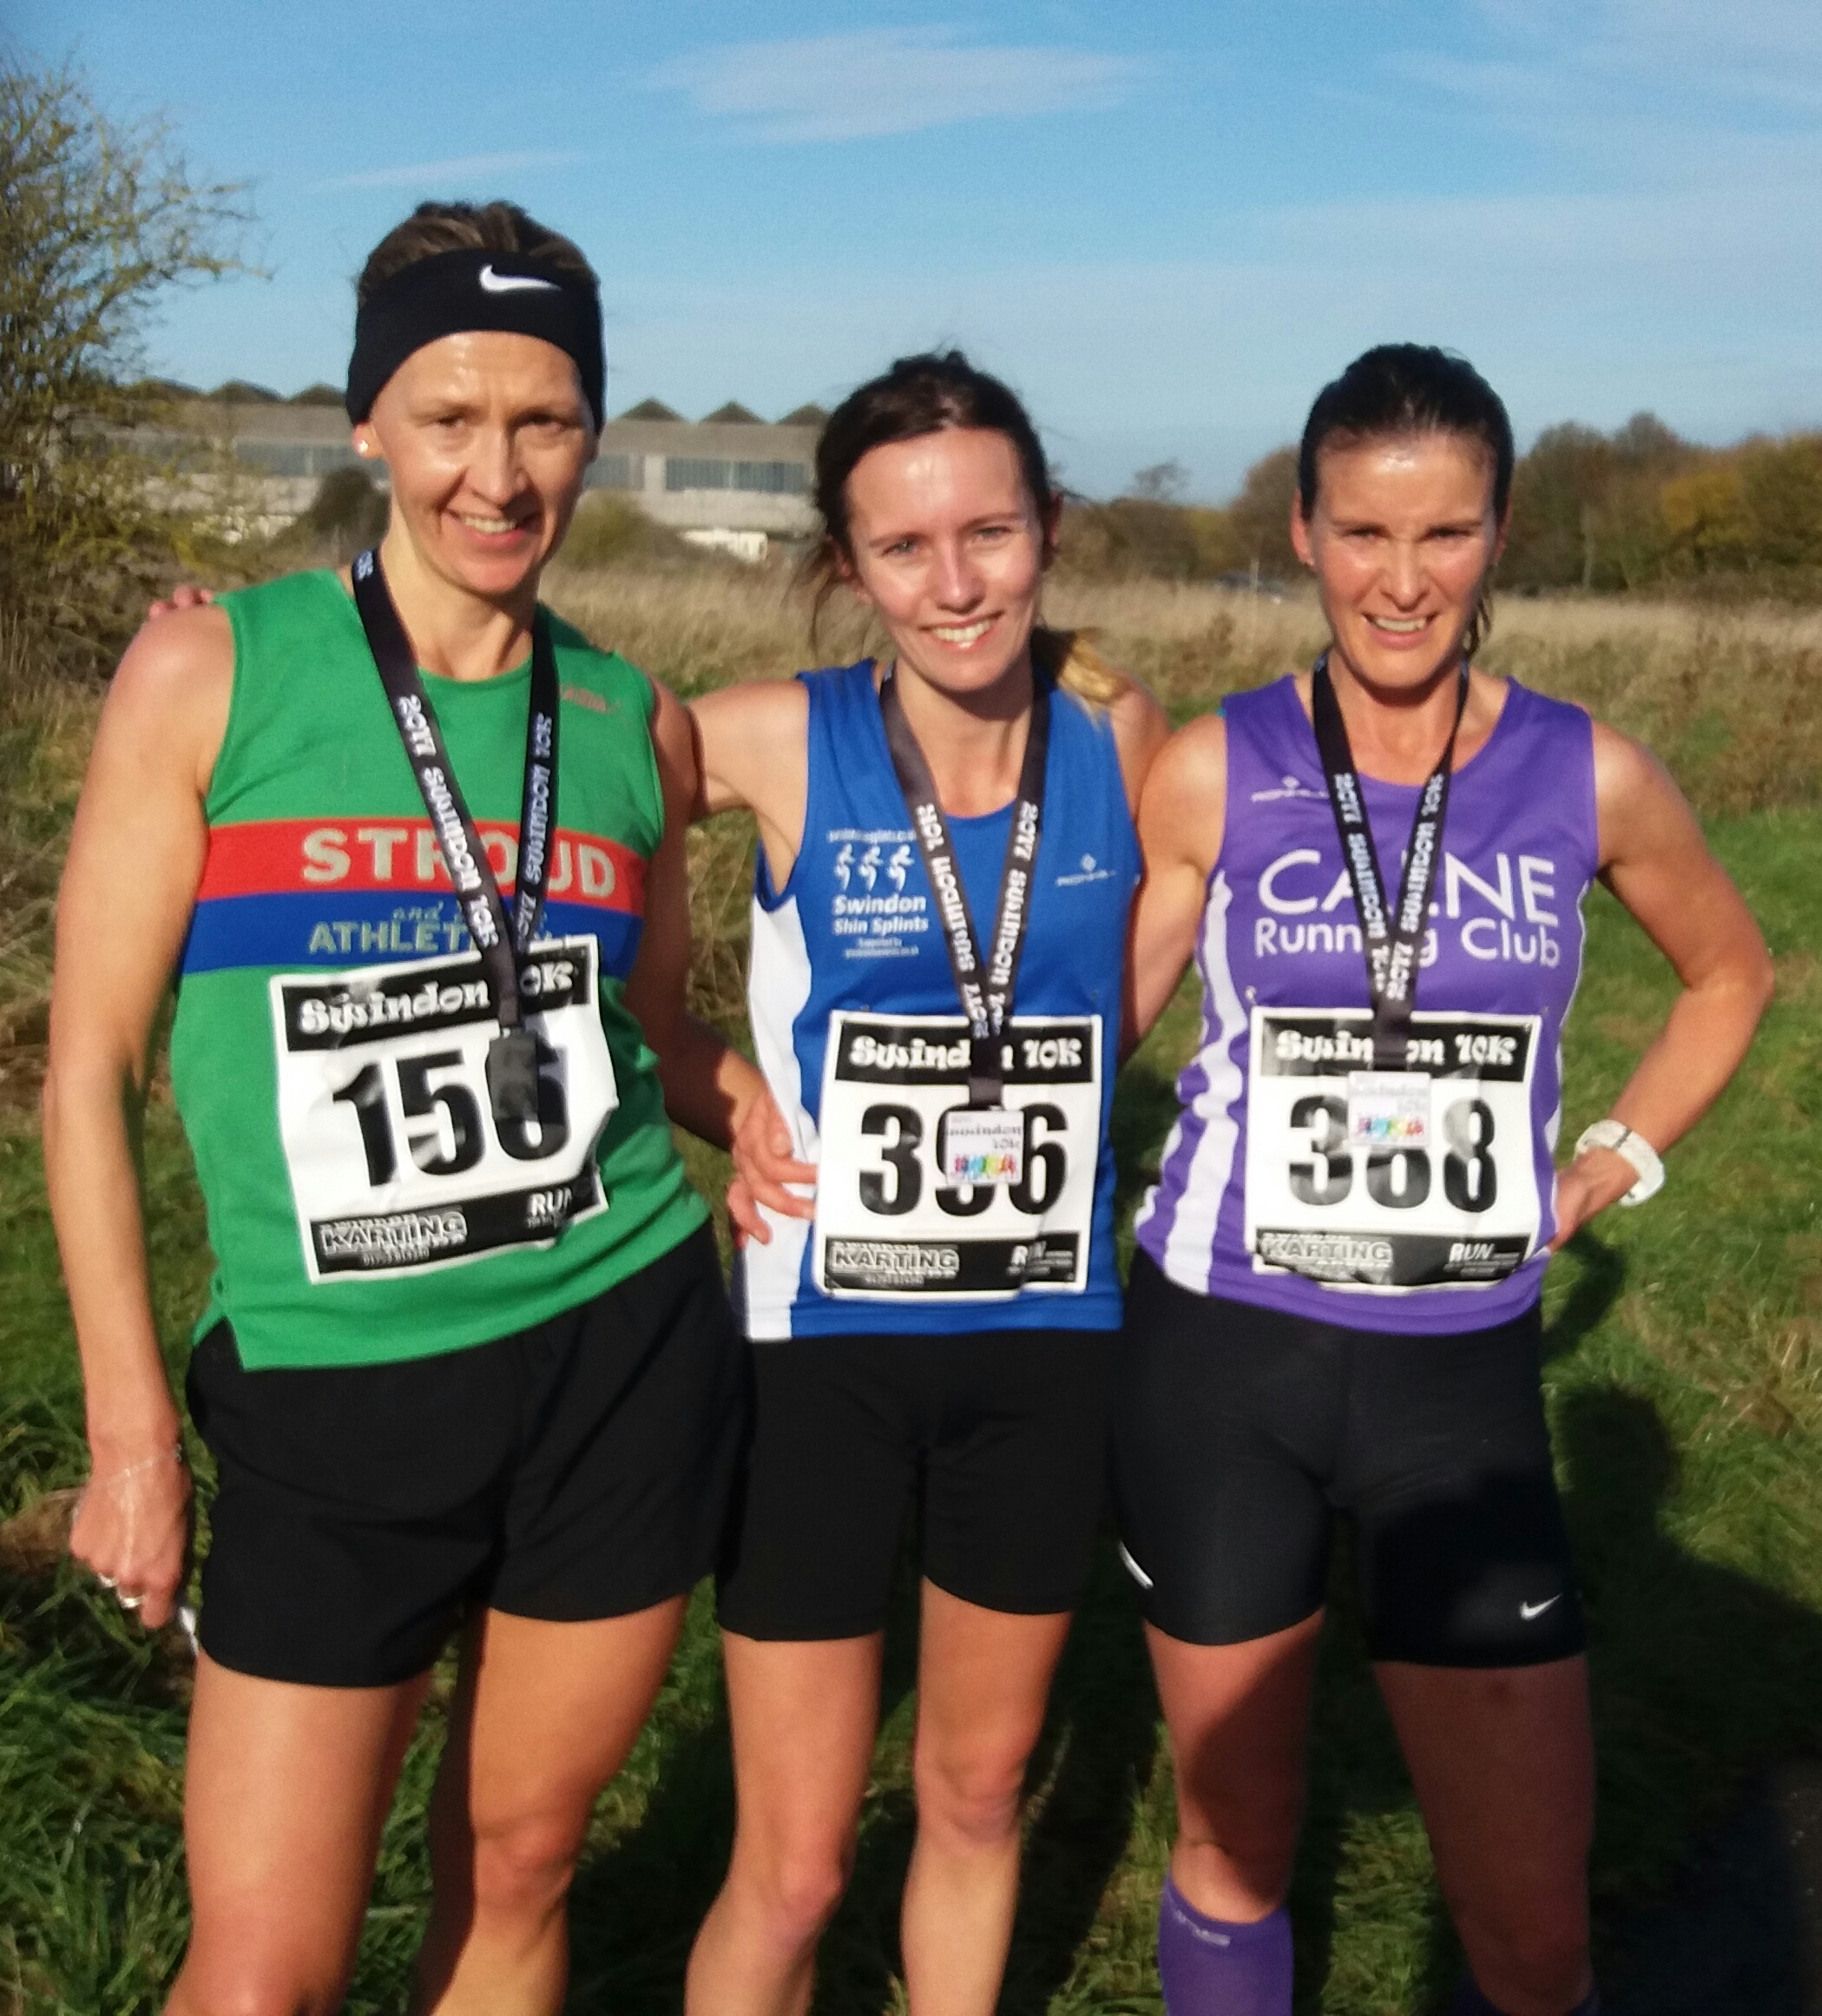 Catie O'Donoghue on top of the podium, flanked by Jo Fifield (left) and Denise Nott at the Swindon 10k